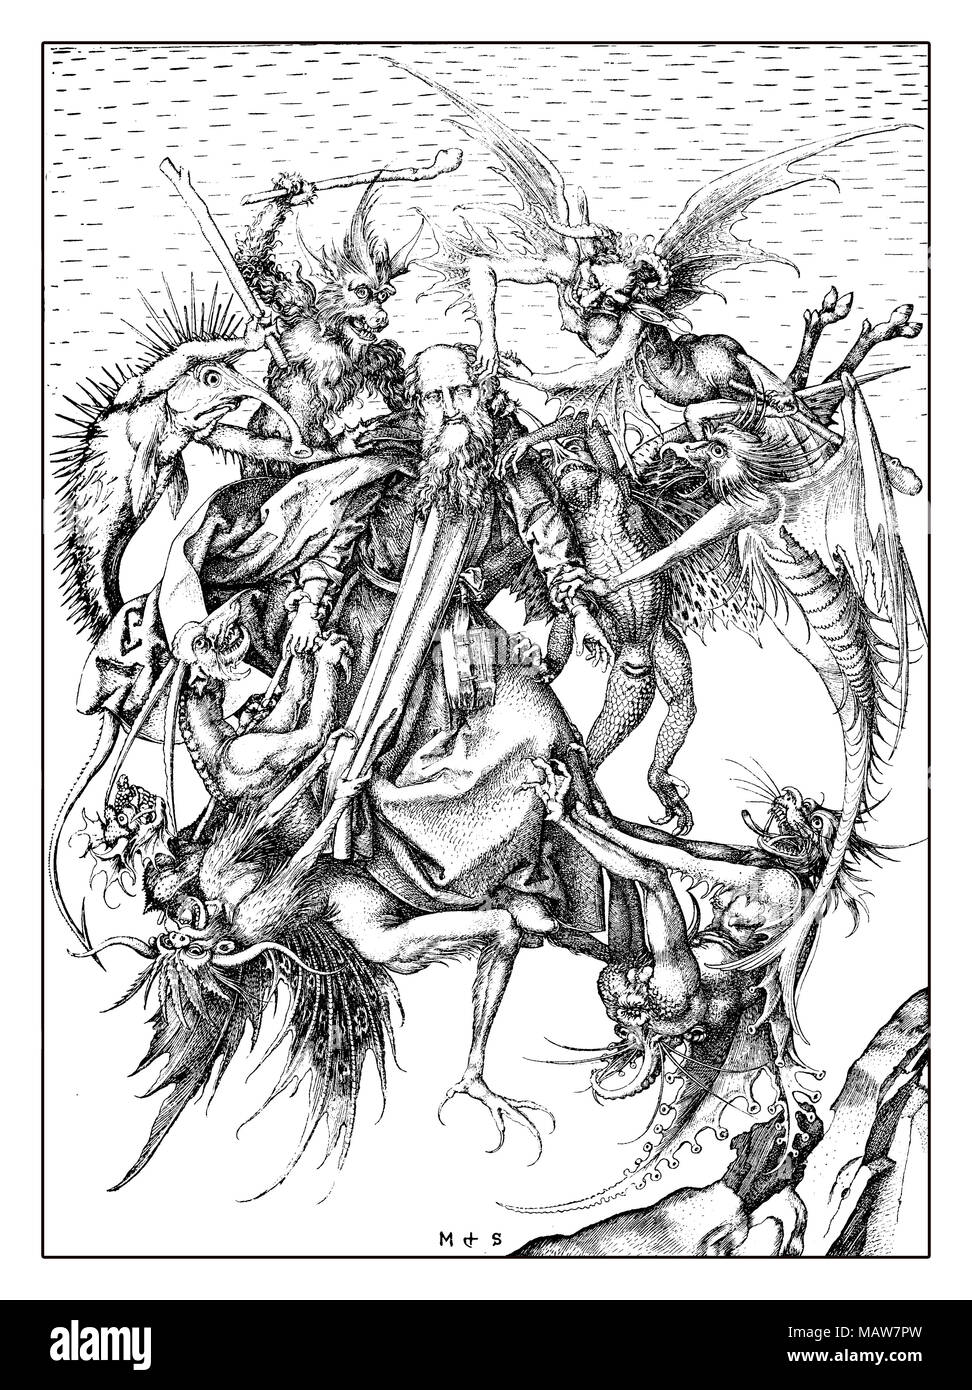 The Temptation of St Anthony that the Christian monk Anthony the Great faced during his desert pilgrimage, engraving by Martin Schongauer, year 1470 - Stock Image